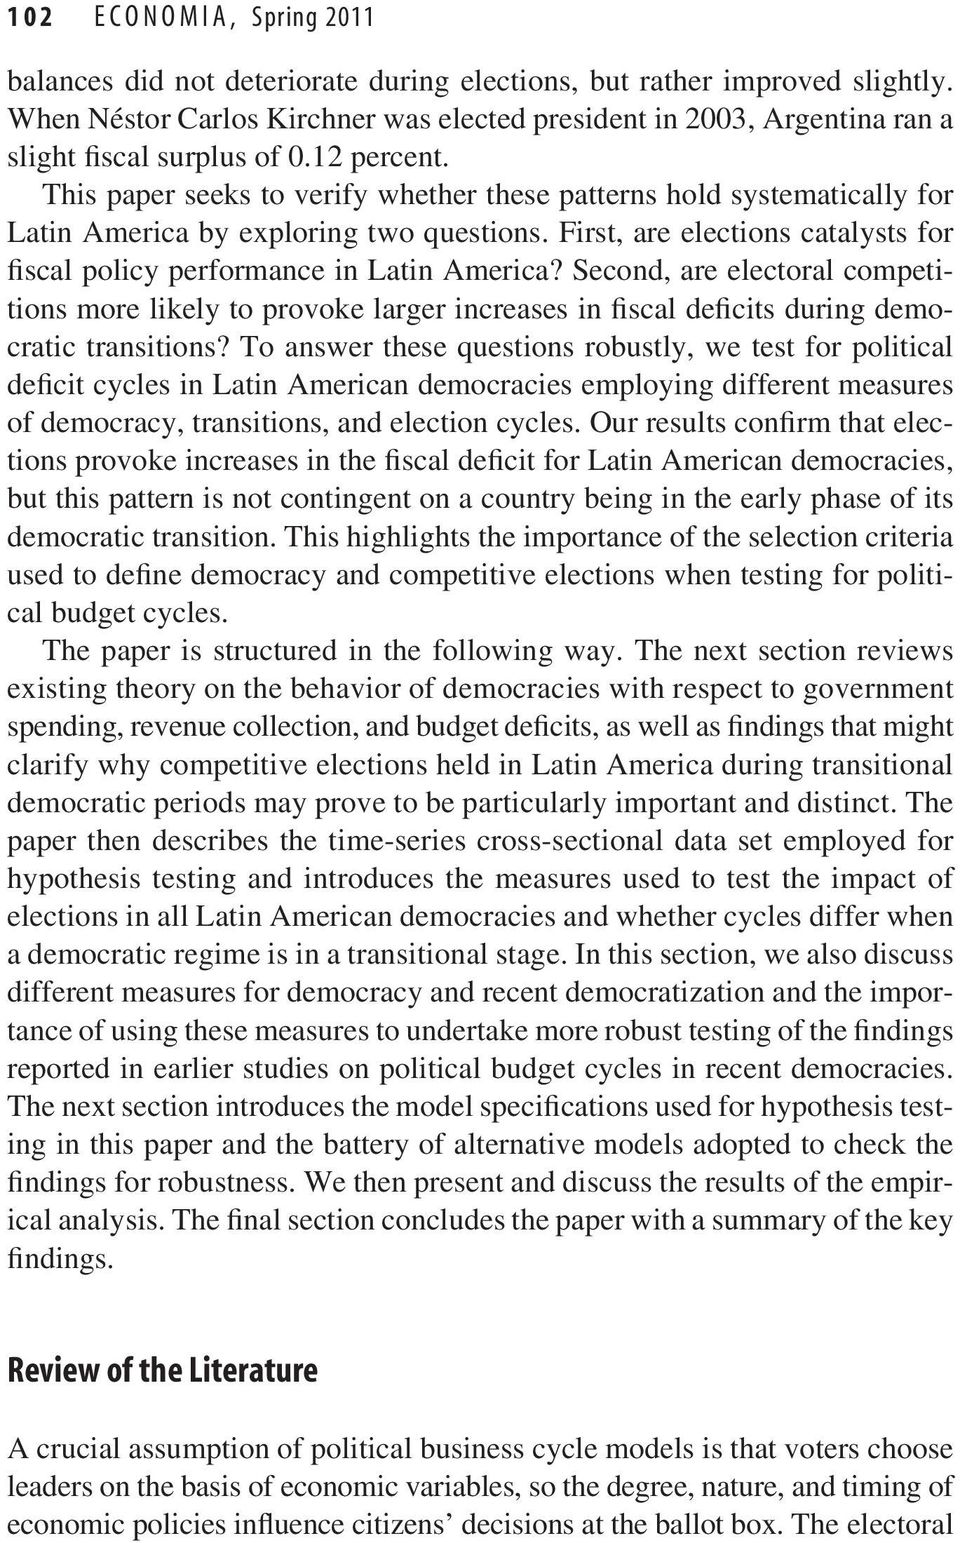 This paper seeks to verify whether these patterns hold systematically for Latin America by exploring two questions. First, are elections catalysts for fiscal policy performance in Latin America?